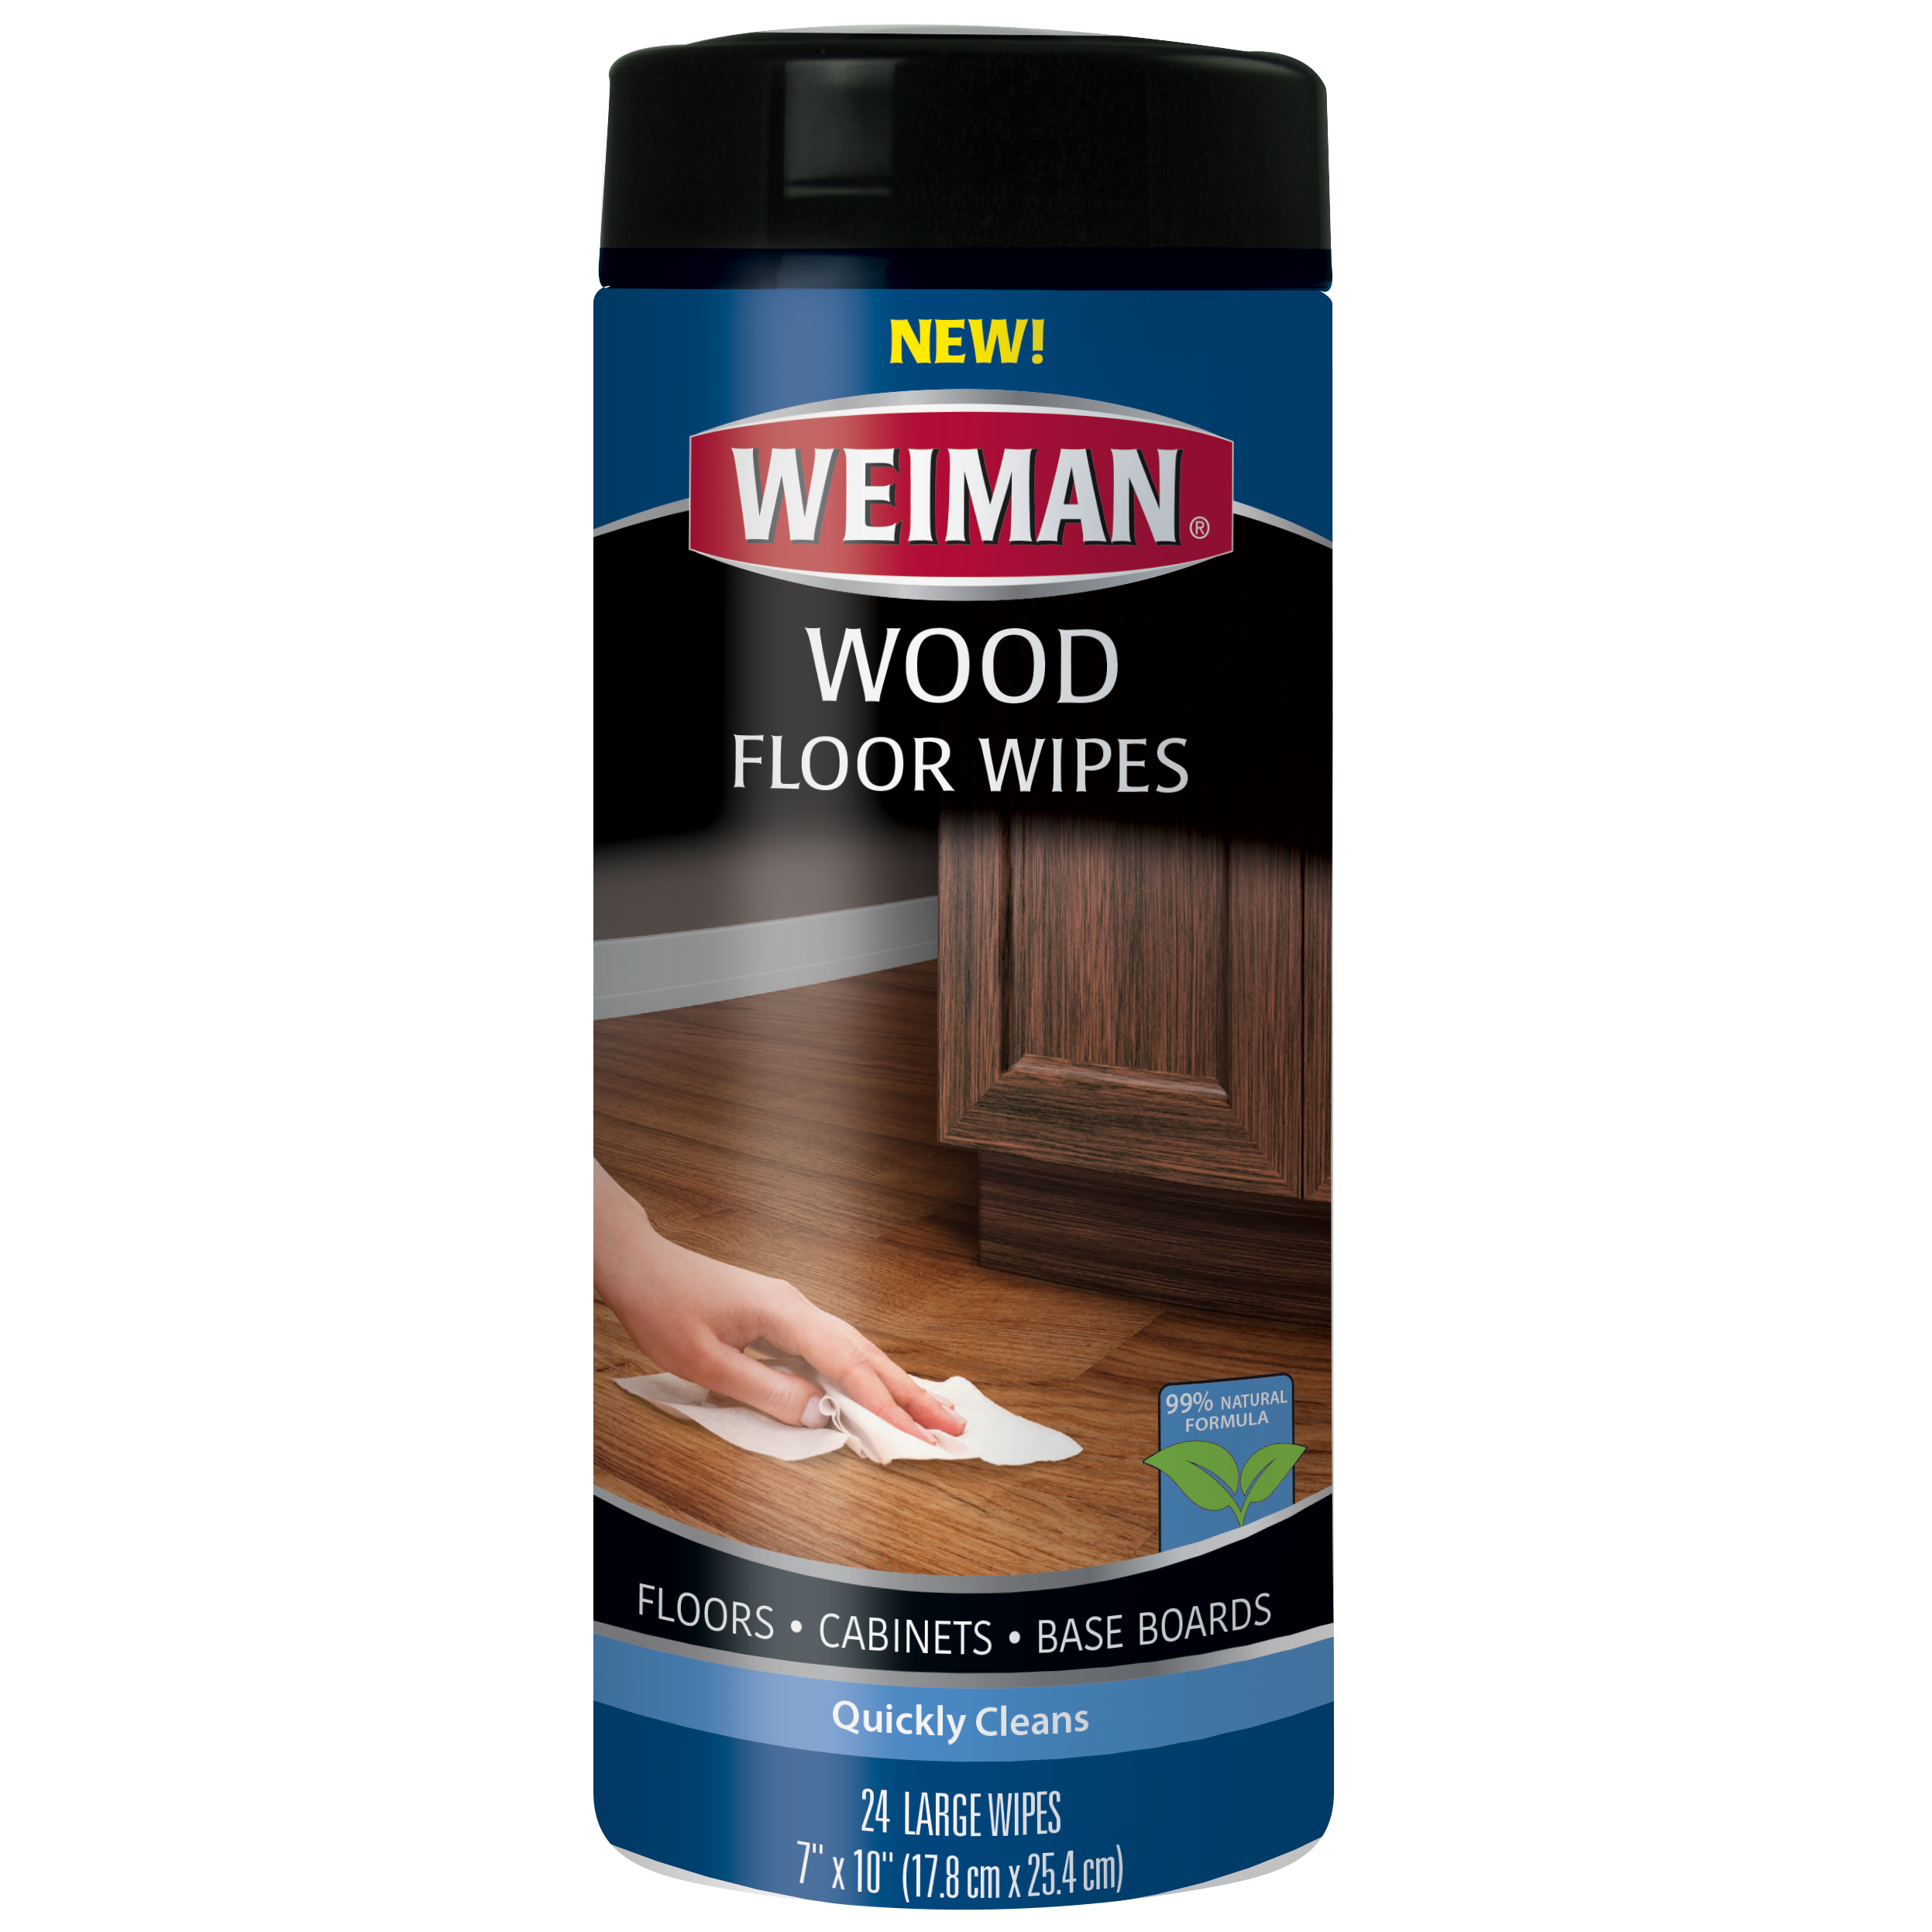 "Weiman Wood Floor Wipes - Quickly Clean floors, baseboards, and cabinets - 99% Natural Formula, Safe for Use Around Kids & Pets - 24 Large Wipes (7"" x 10"")"